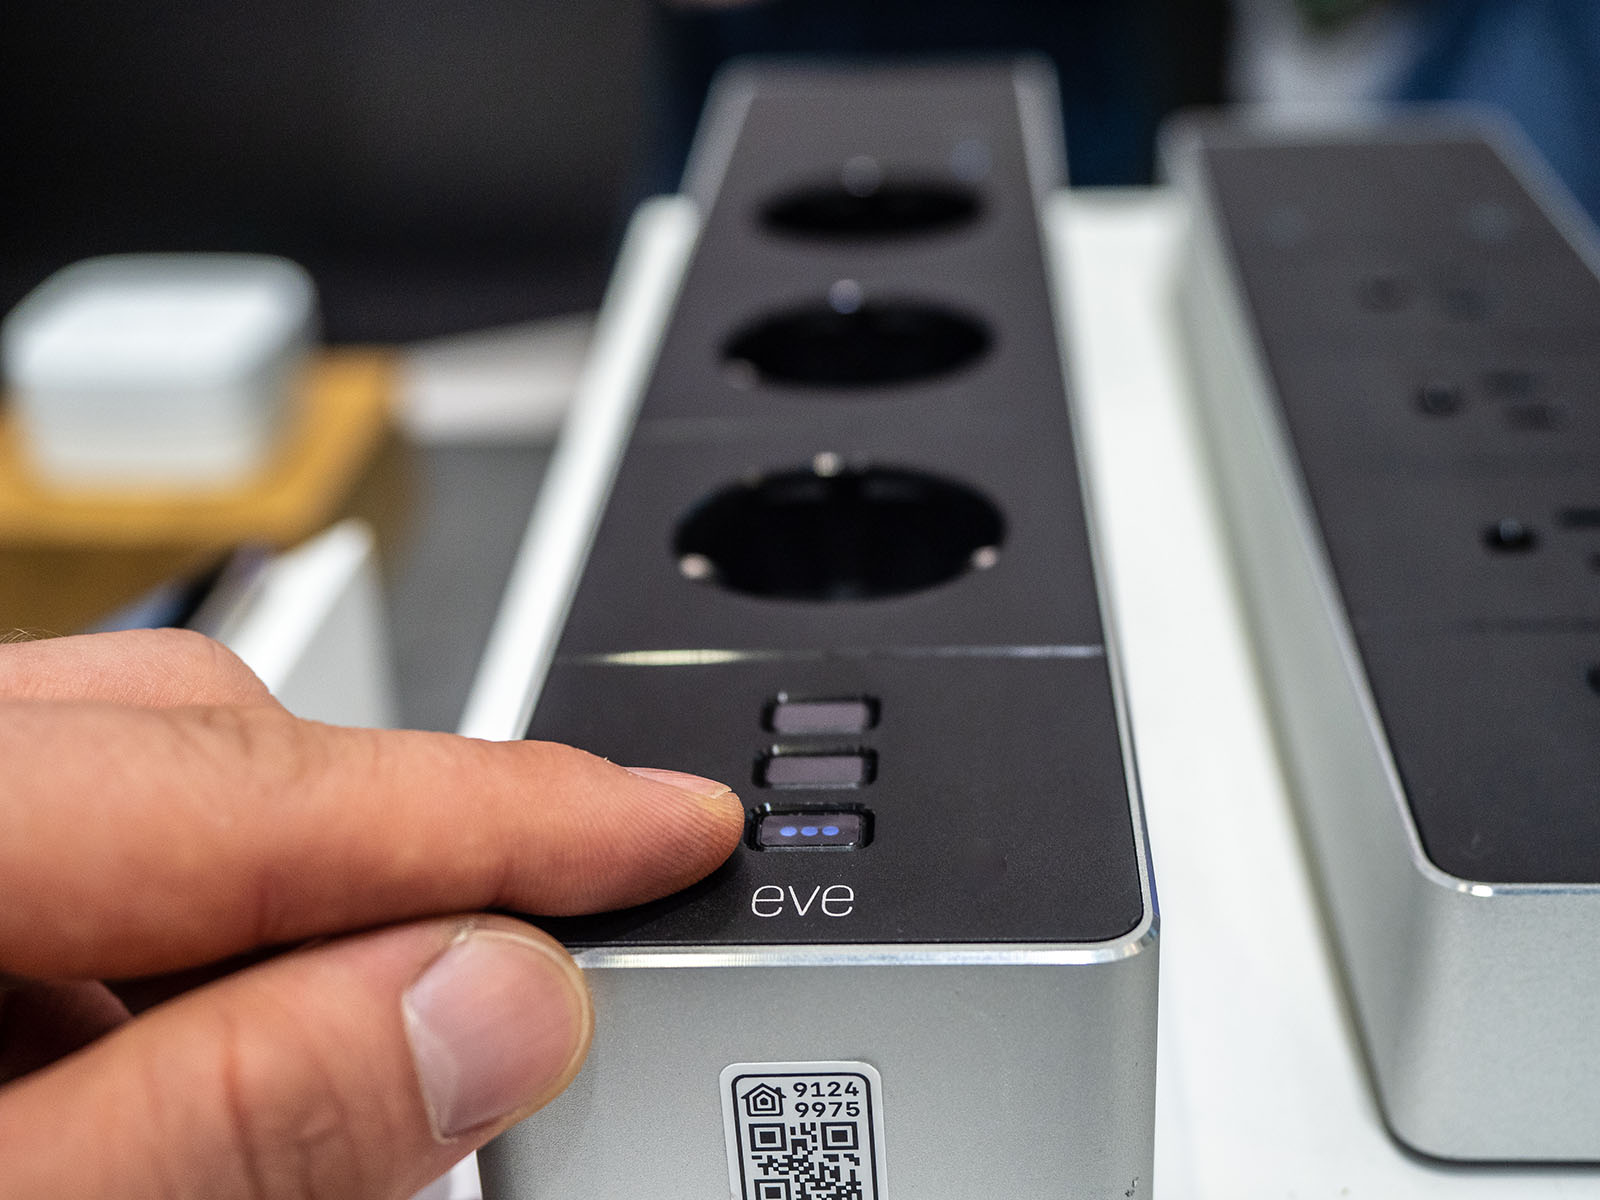 Eve Power Strip IFA 2018 Eve Systems